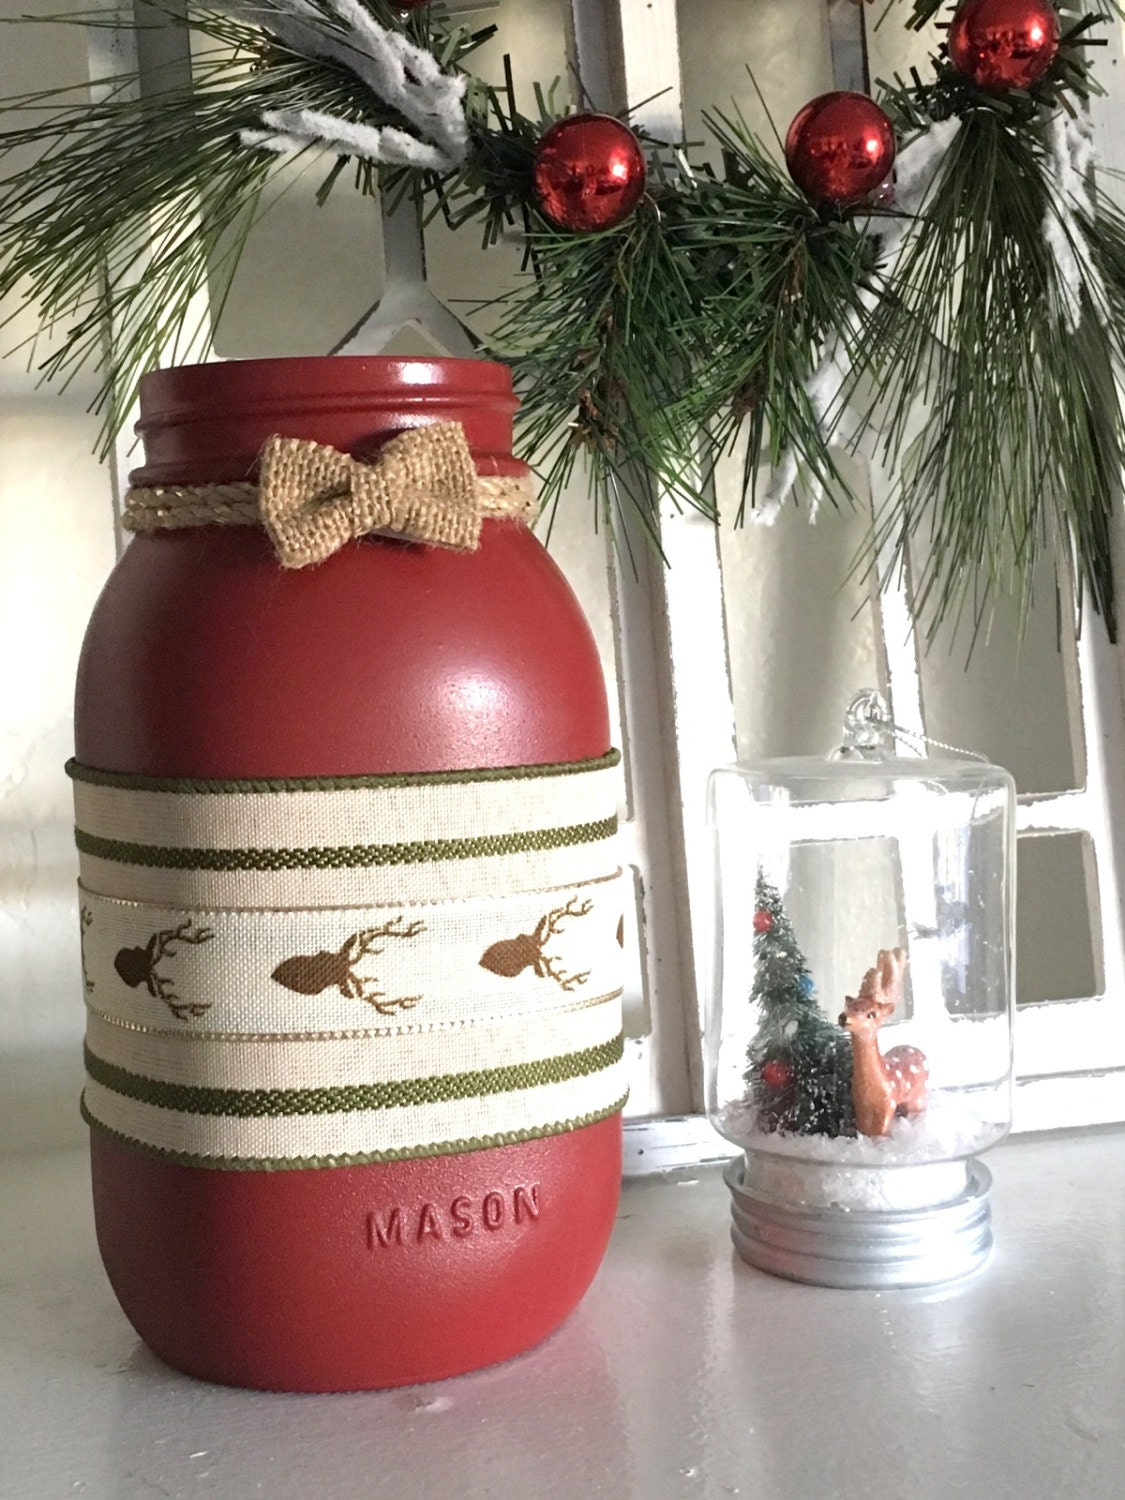 Christmas Centerpiece Ideas With Mason Jars : Christmas mason jar centerpiece decor